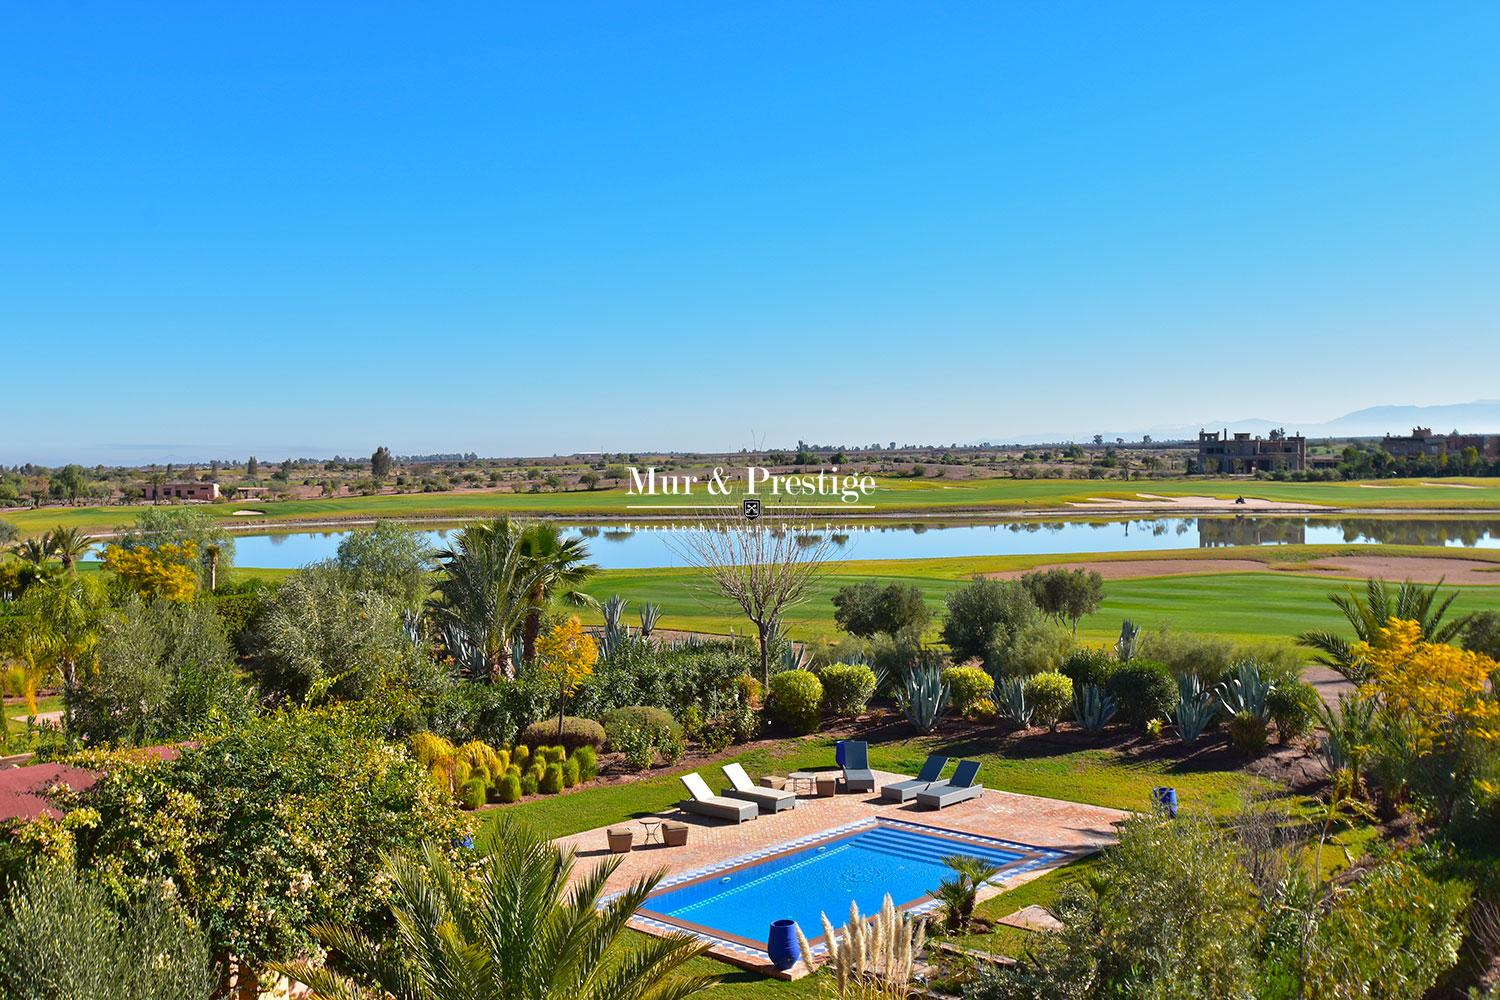 Vente villa en 1�re ligne de golf � Marrakech